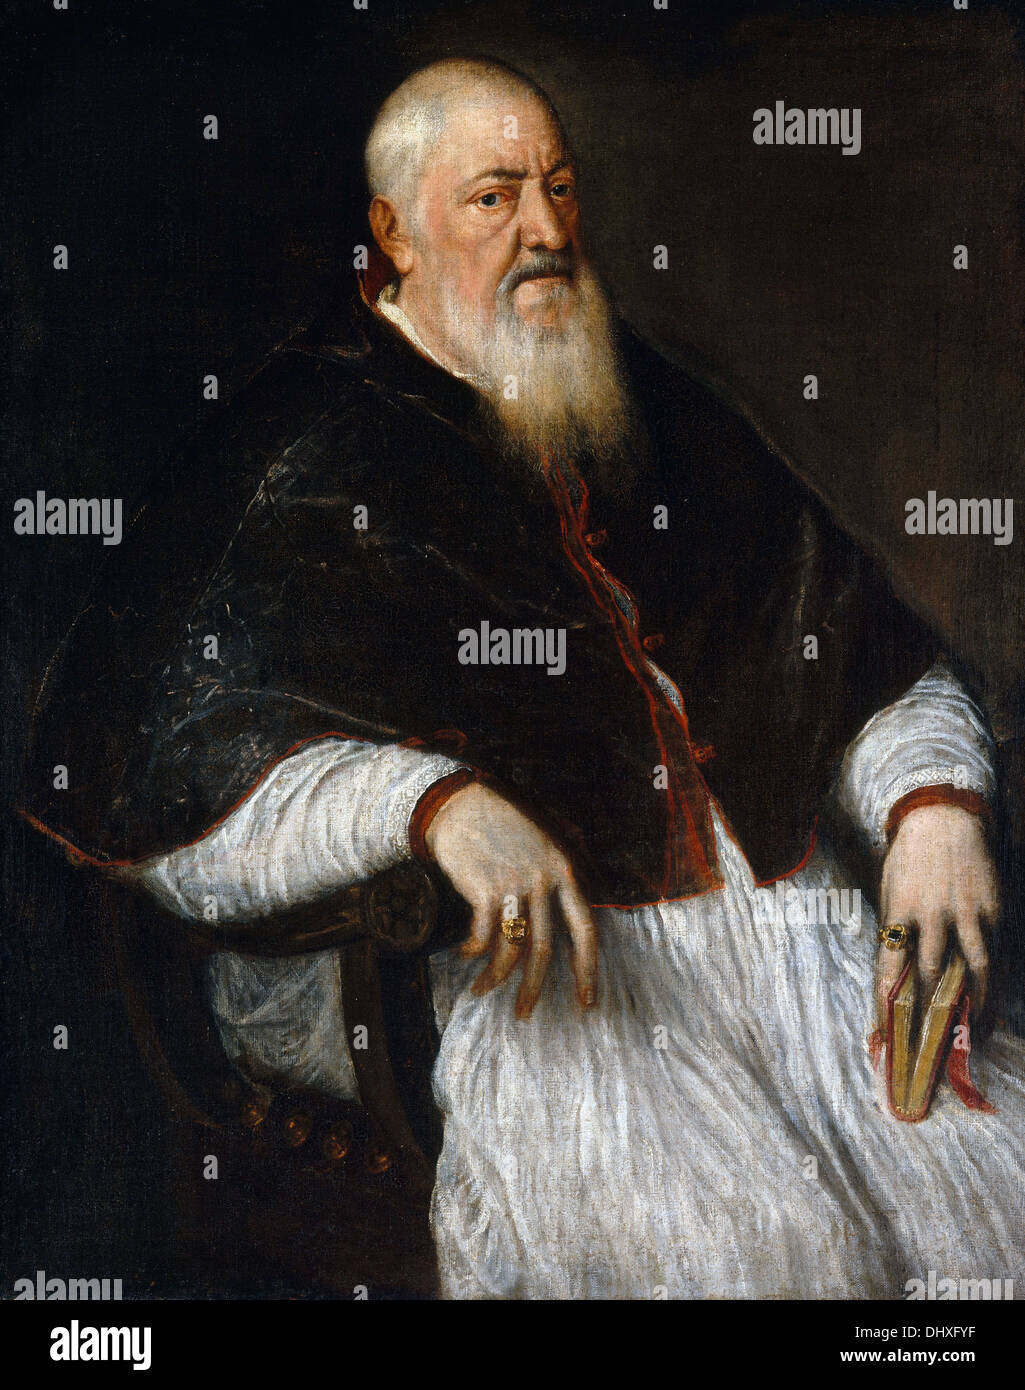 Filippo Archinto, Archbishop Of Milan - by Titian, 1550's - Stock Image